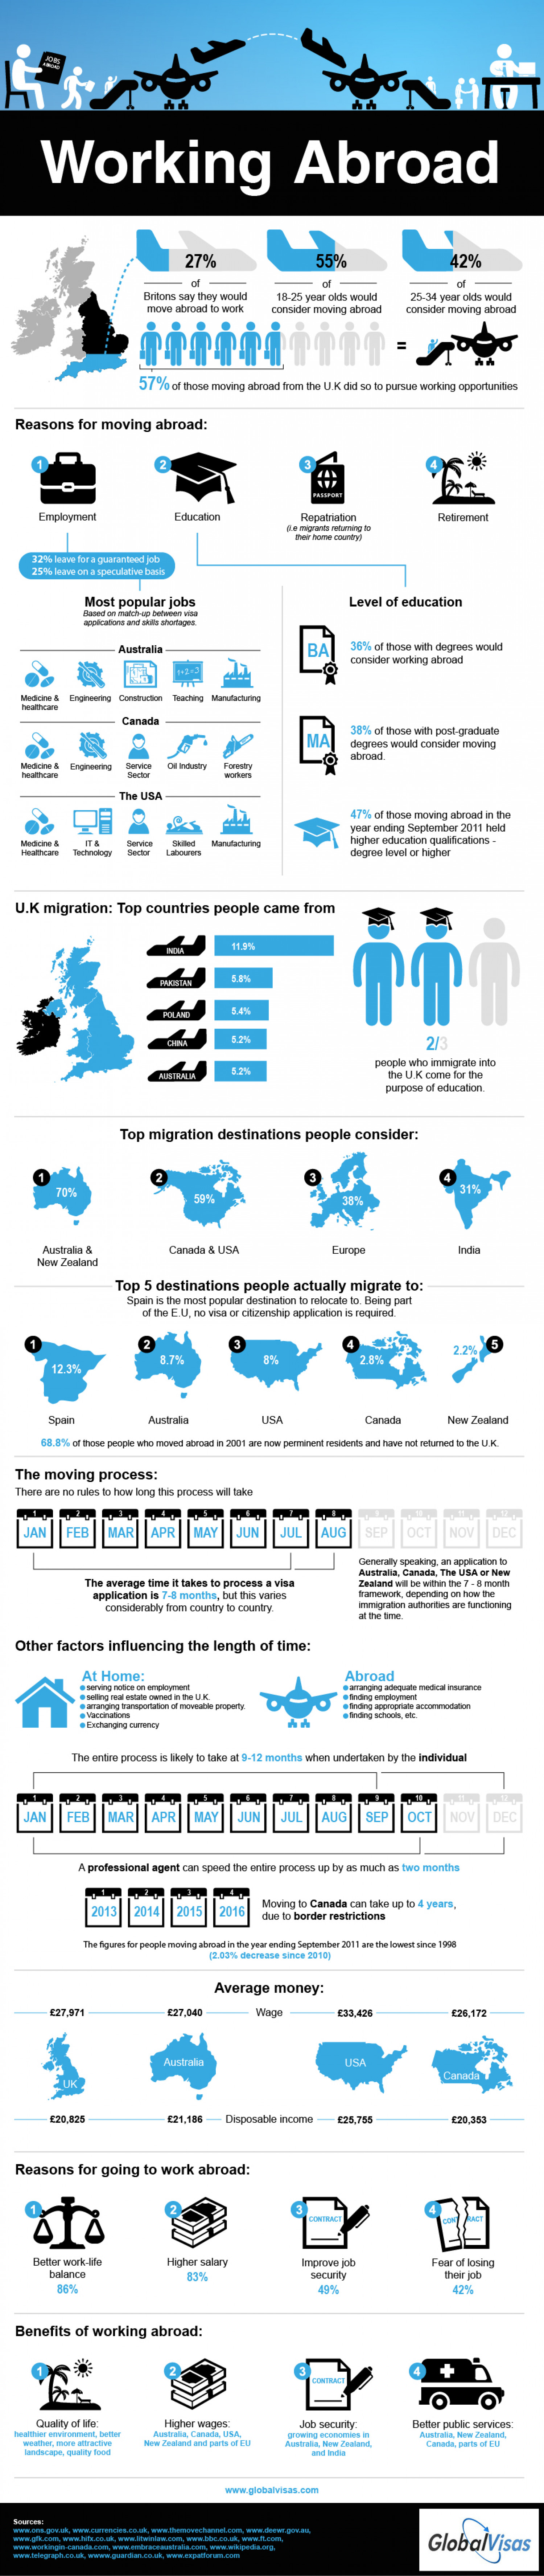 Global Visas UK Immigration Work Permits Infographic